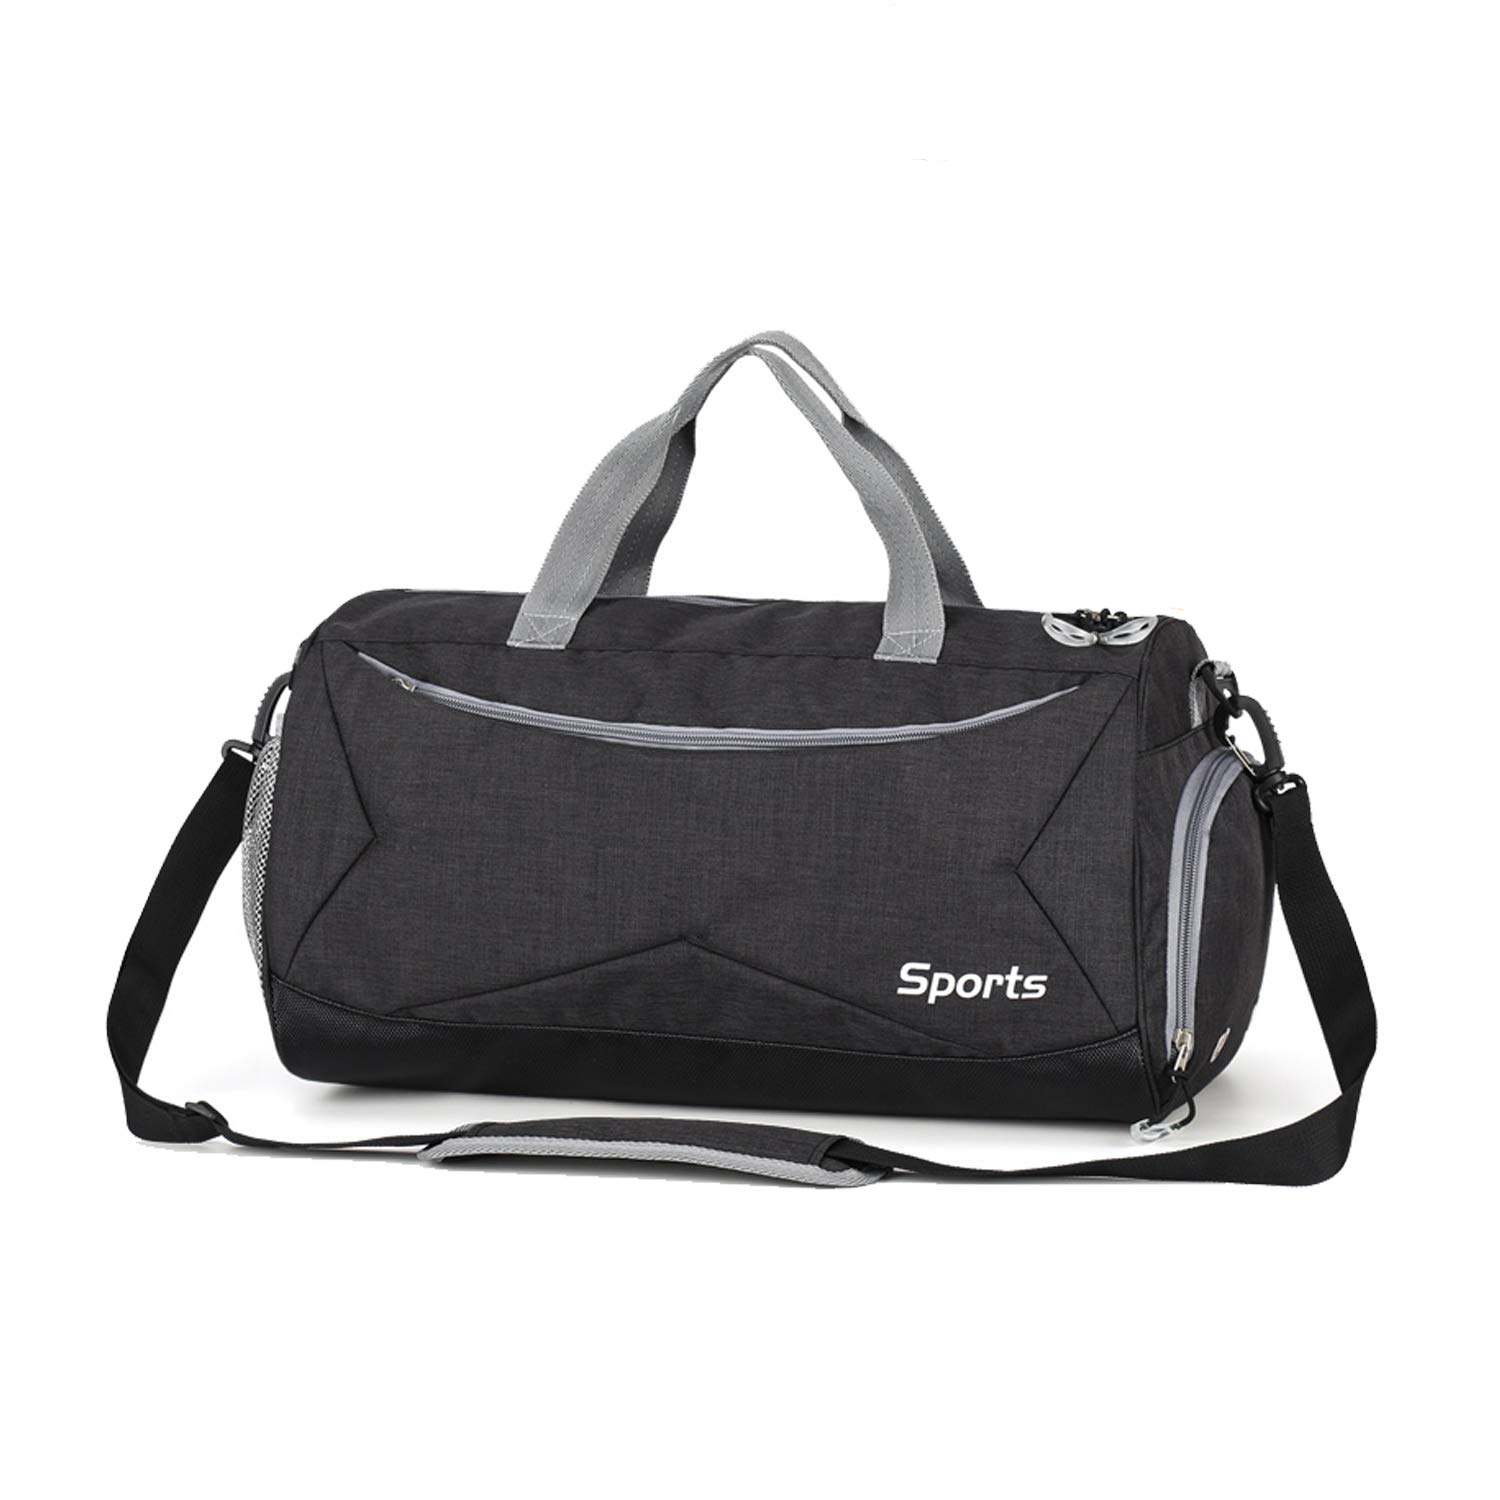 aeepd Sports Gym Bag Travel Luggage Duffel Bag with Wet Pocket Shoes Compartment for Men Women Black